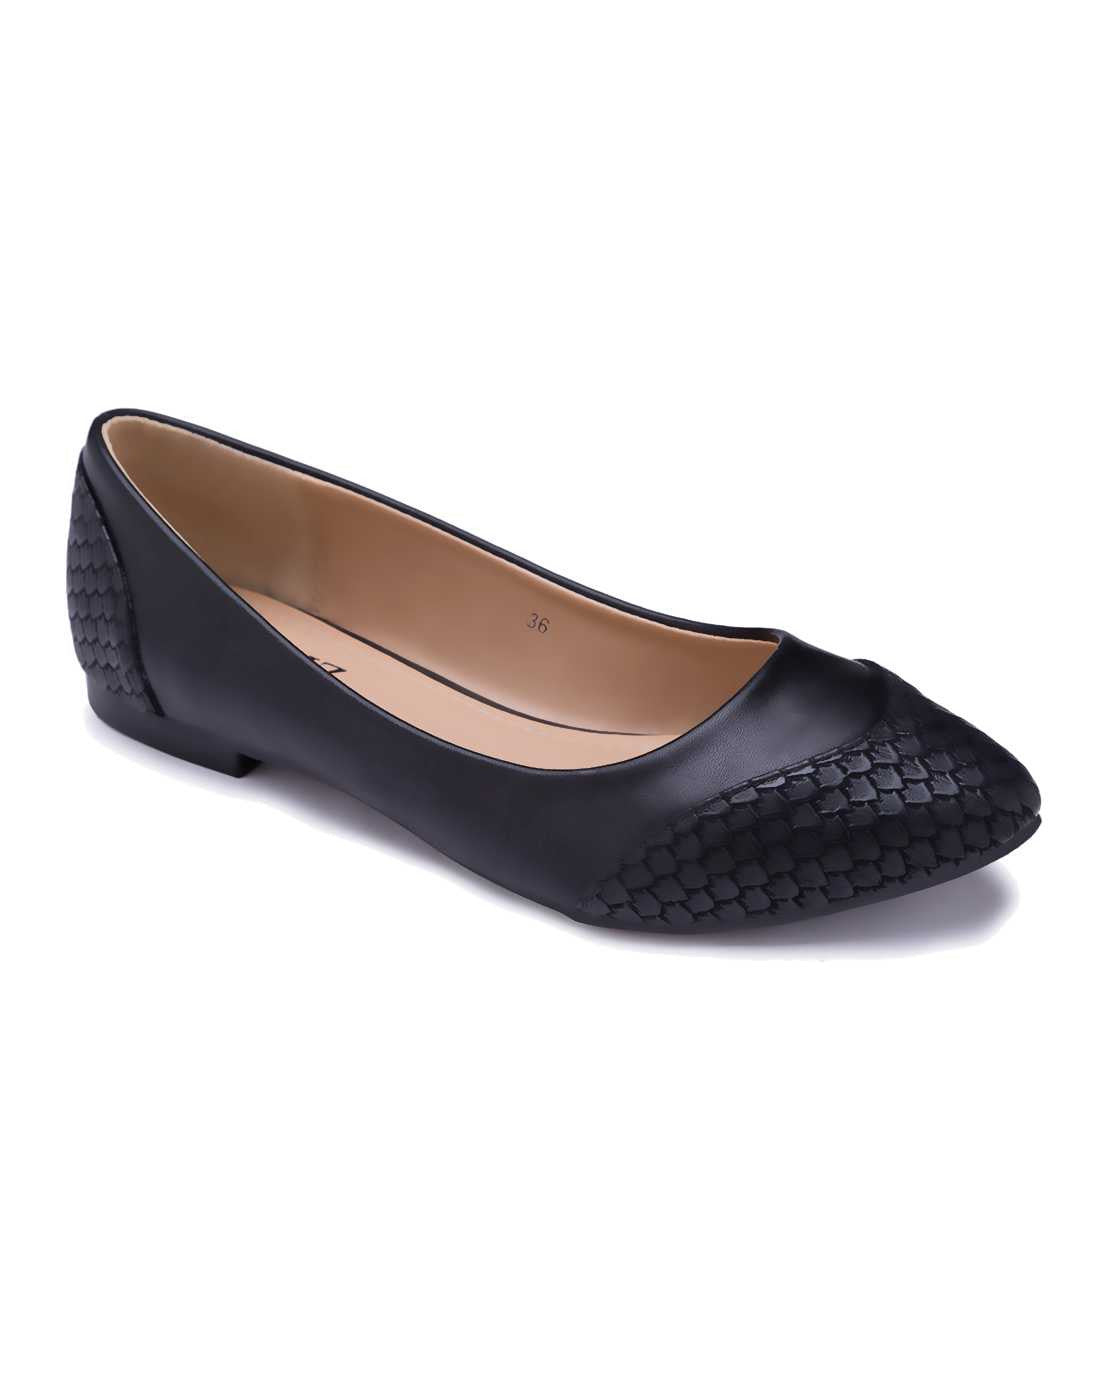 Panelled Black Ballerinas